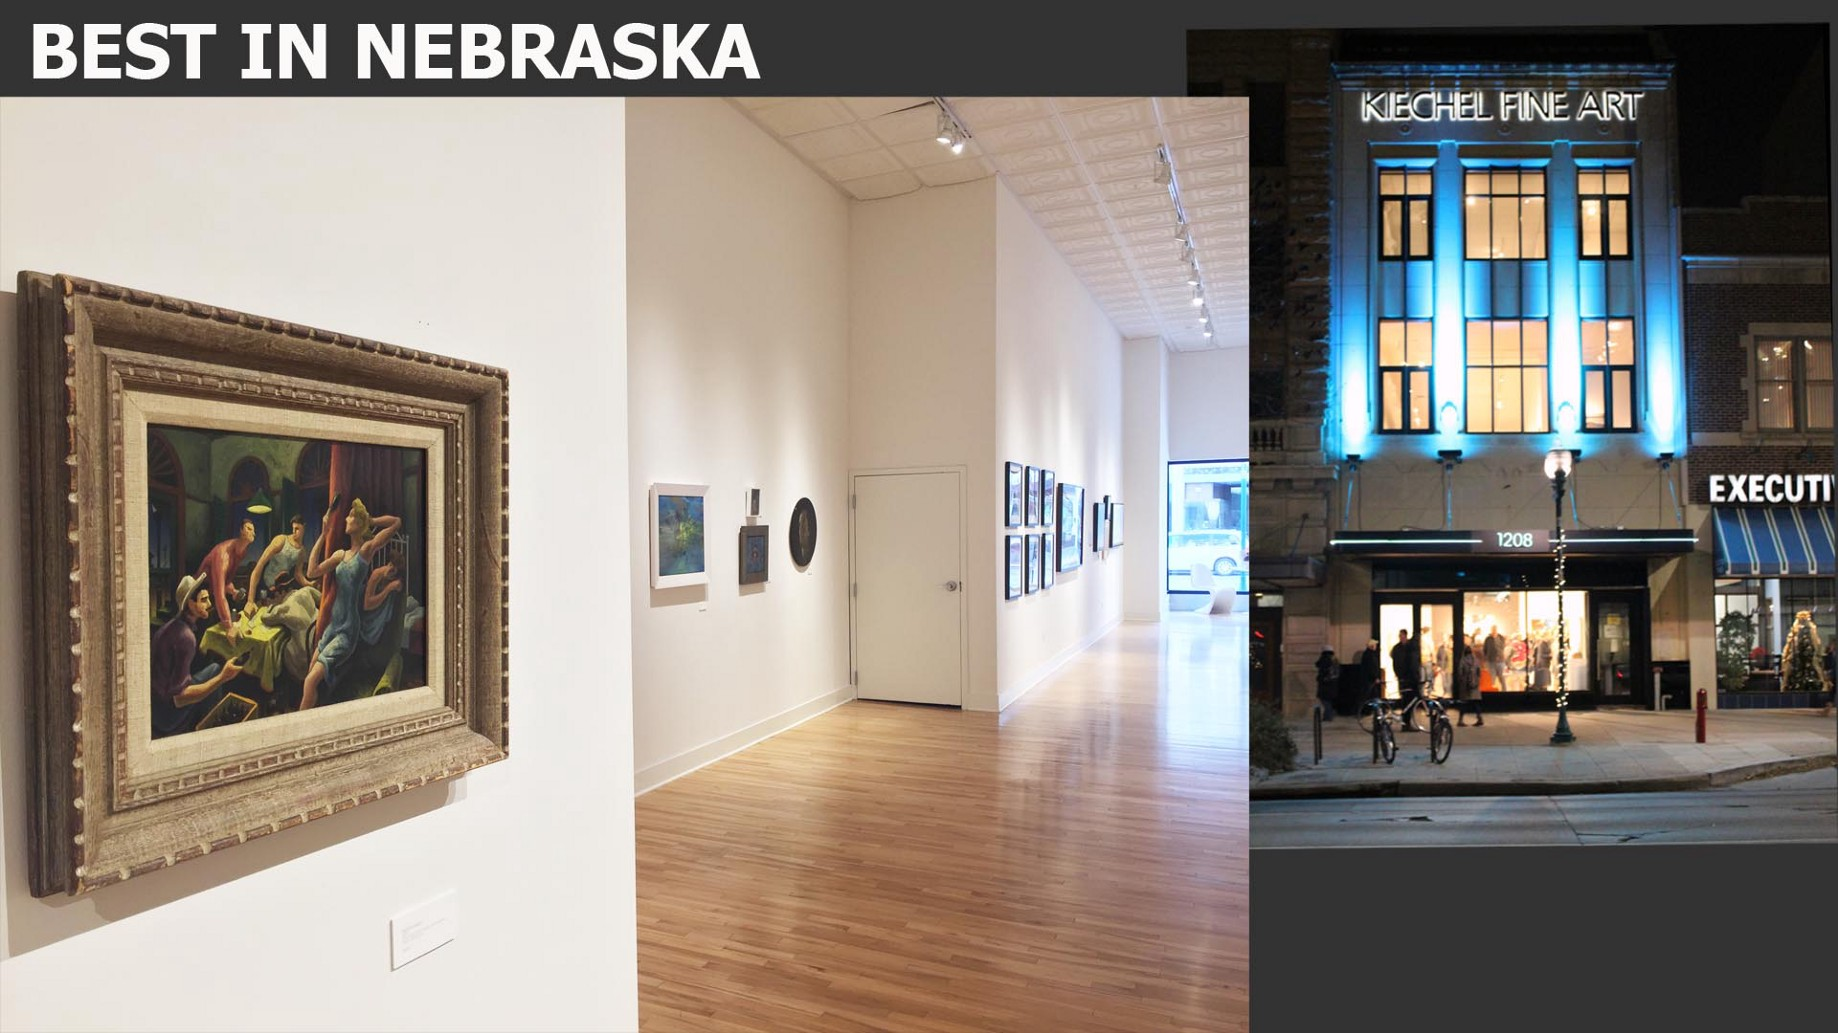 Kiechel Fine Art Named Best Gallery Or Museum In Nebraska By